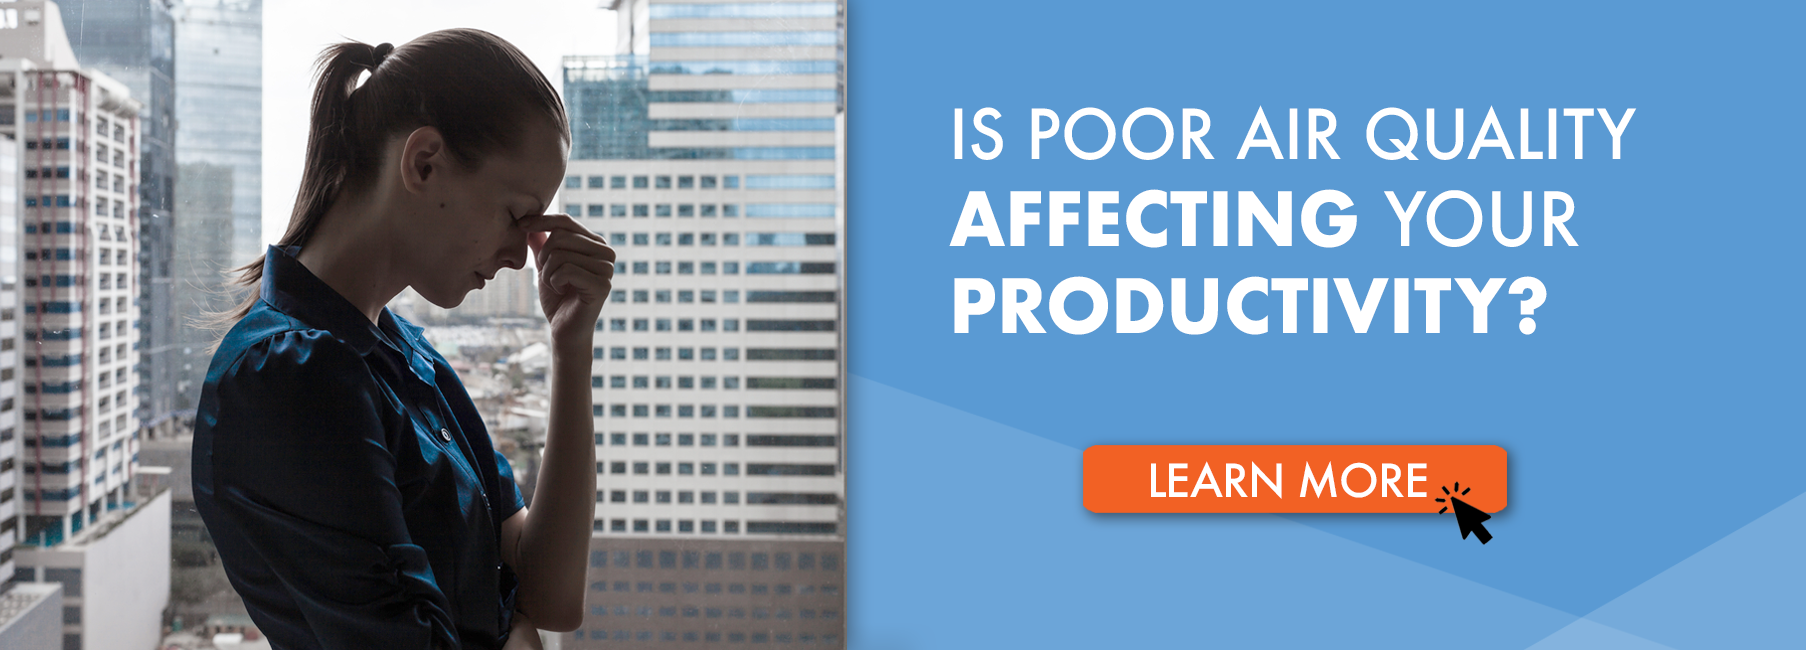 Is Poor Air Quality Affecting Your Productivity?